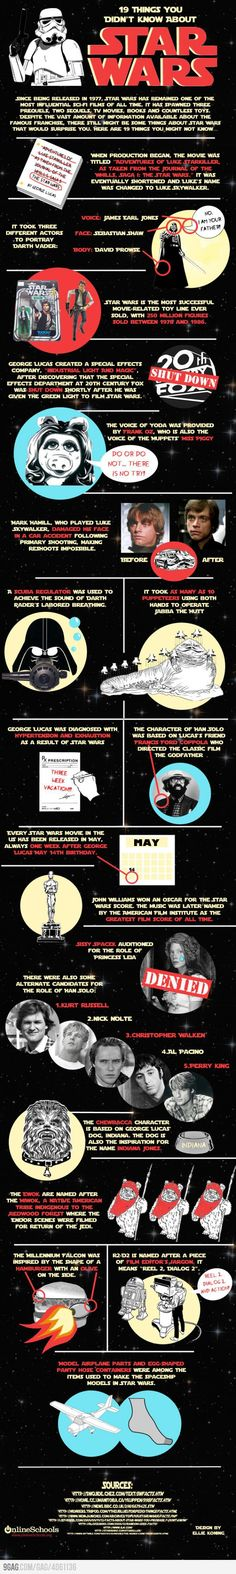 19 things you may or may not know about Star Wars.